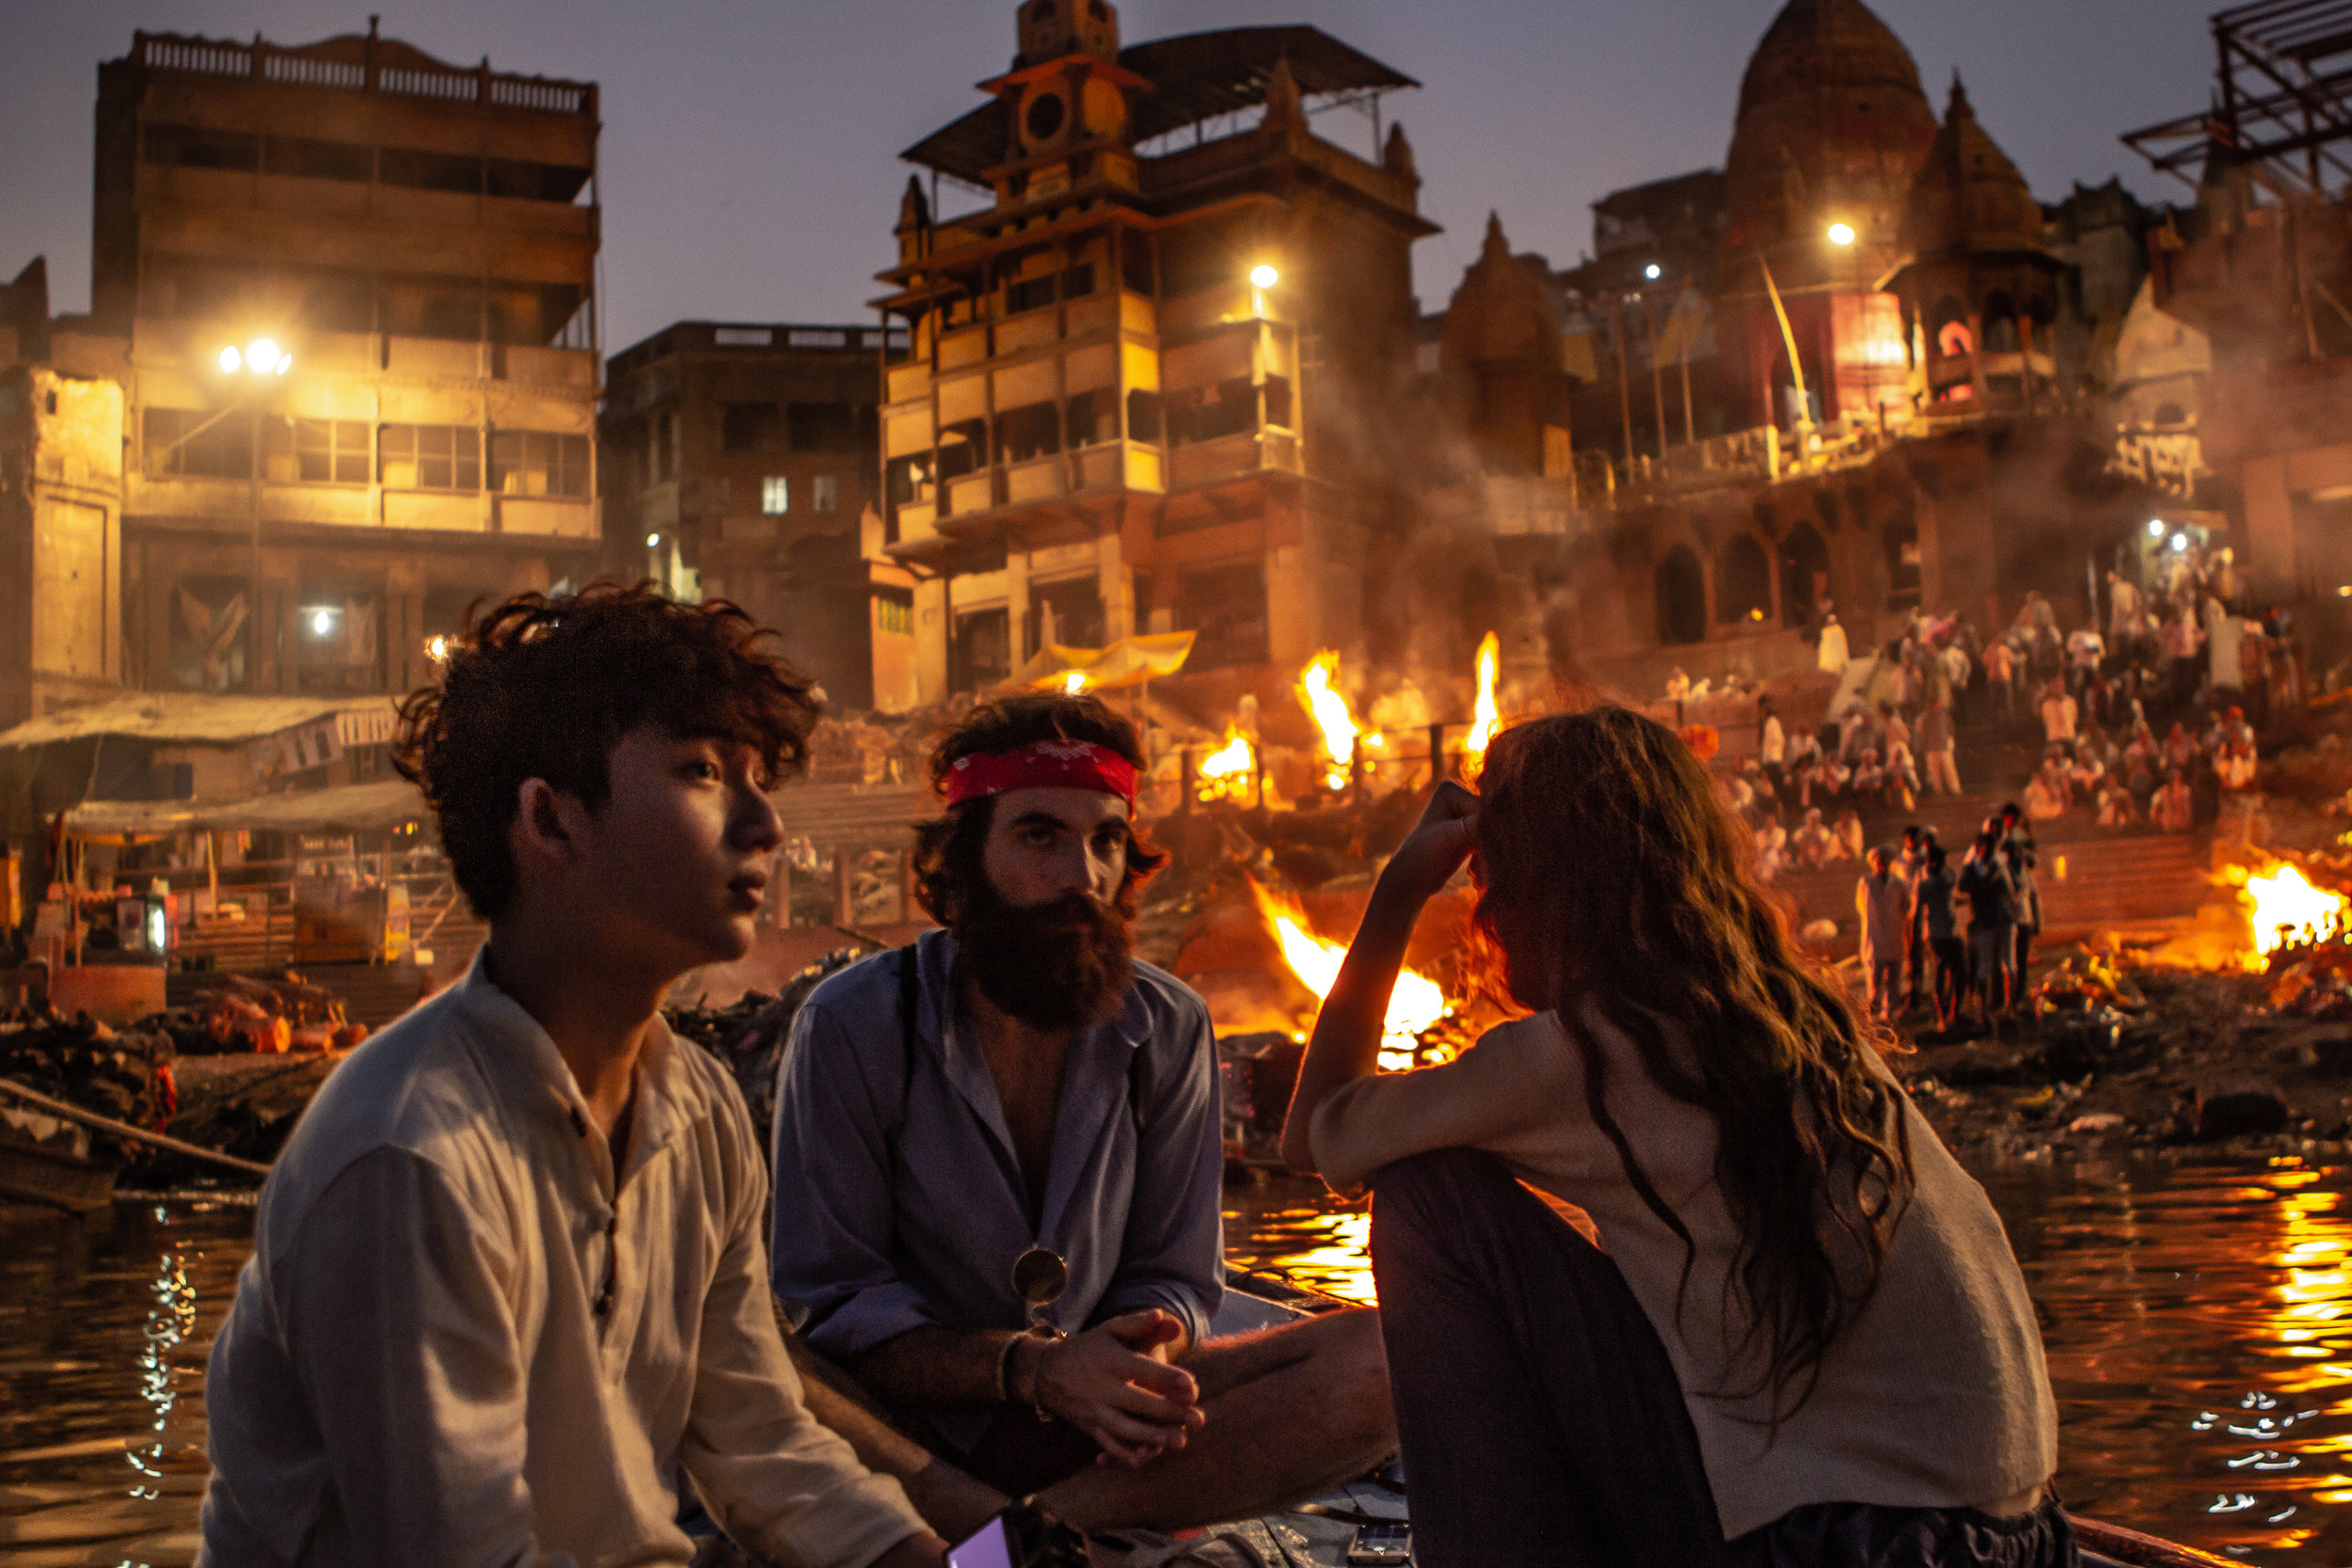 Sanctified Ceremony:   Smoke billows into the sky throughout the day. By nightfall, the flames burn brighter than any city lights. A ceremony that seems foreign to the uninitiated lasts until the wee hours of the mourning.